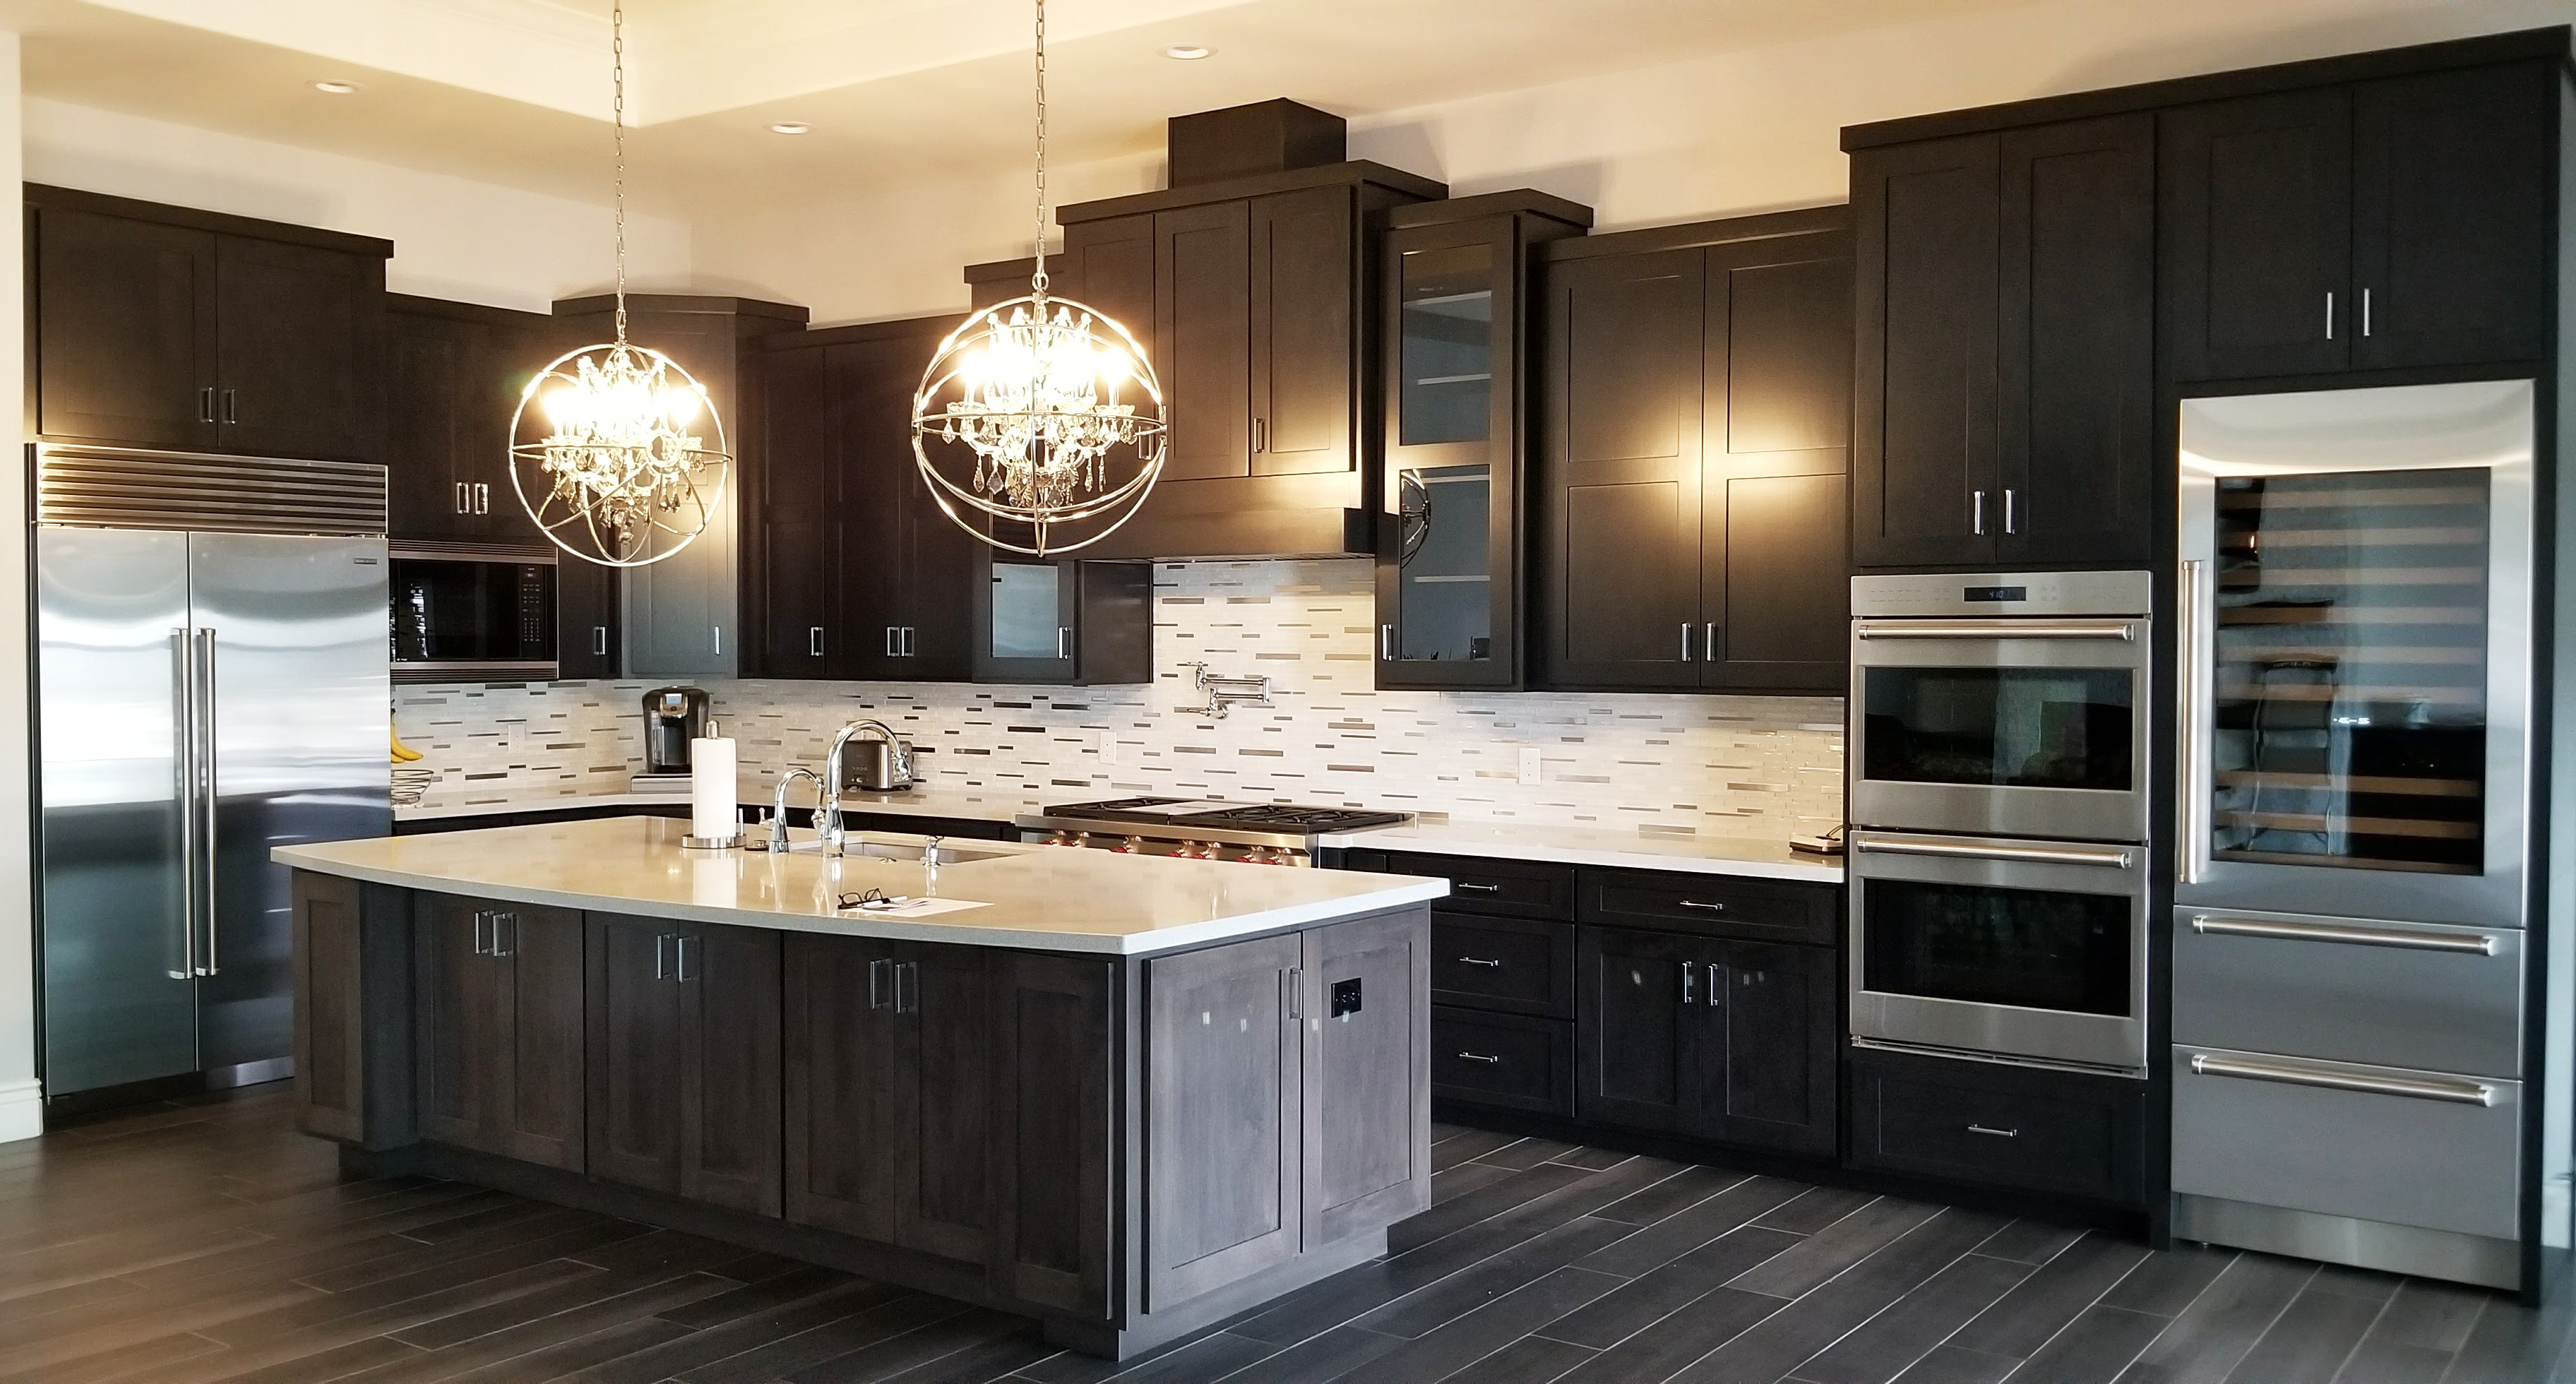 kitchen cabinet refacing | Kitchen Cabinet Refacing Phoenix | Better Than New Kitchens